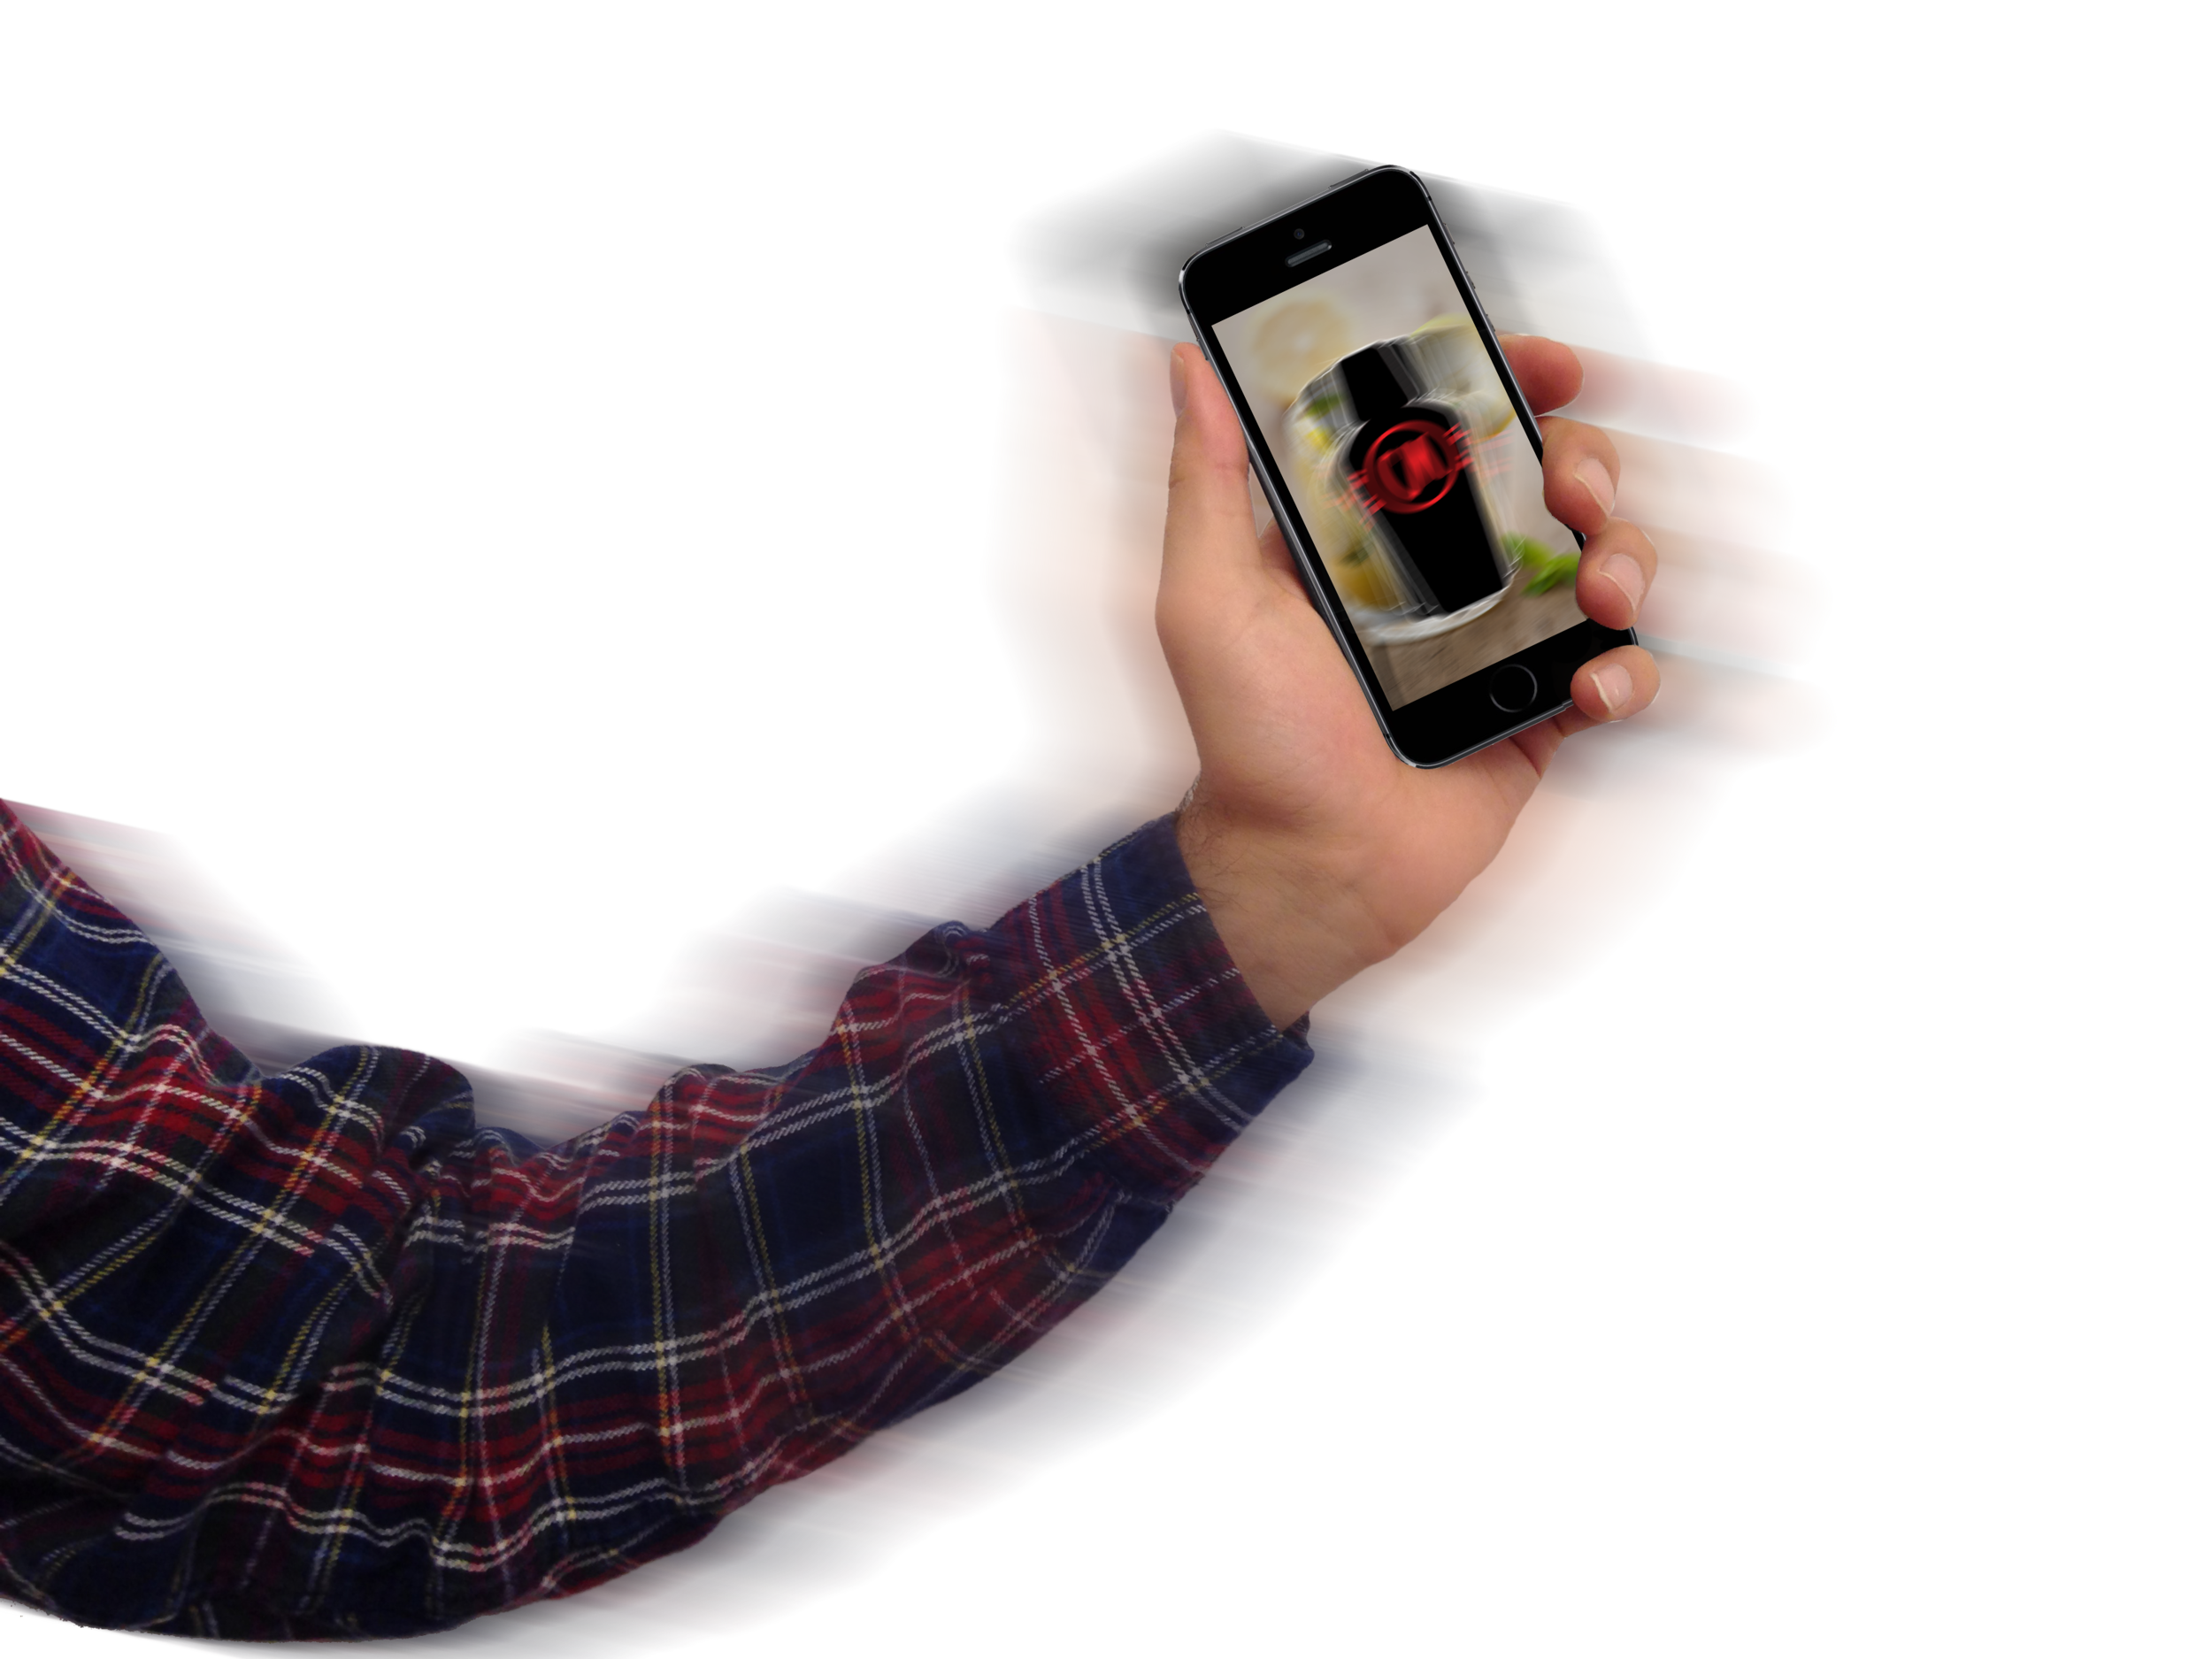 hand_blurred_flipped_6_5.png